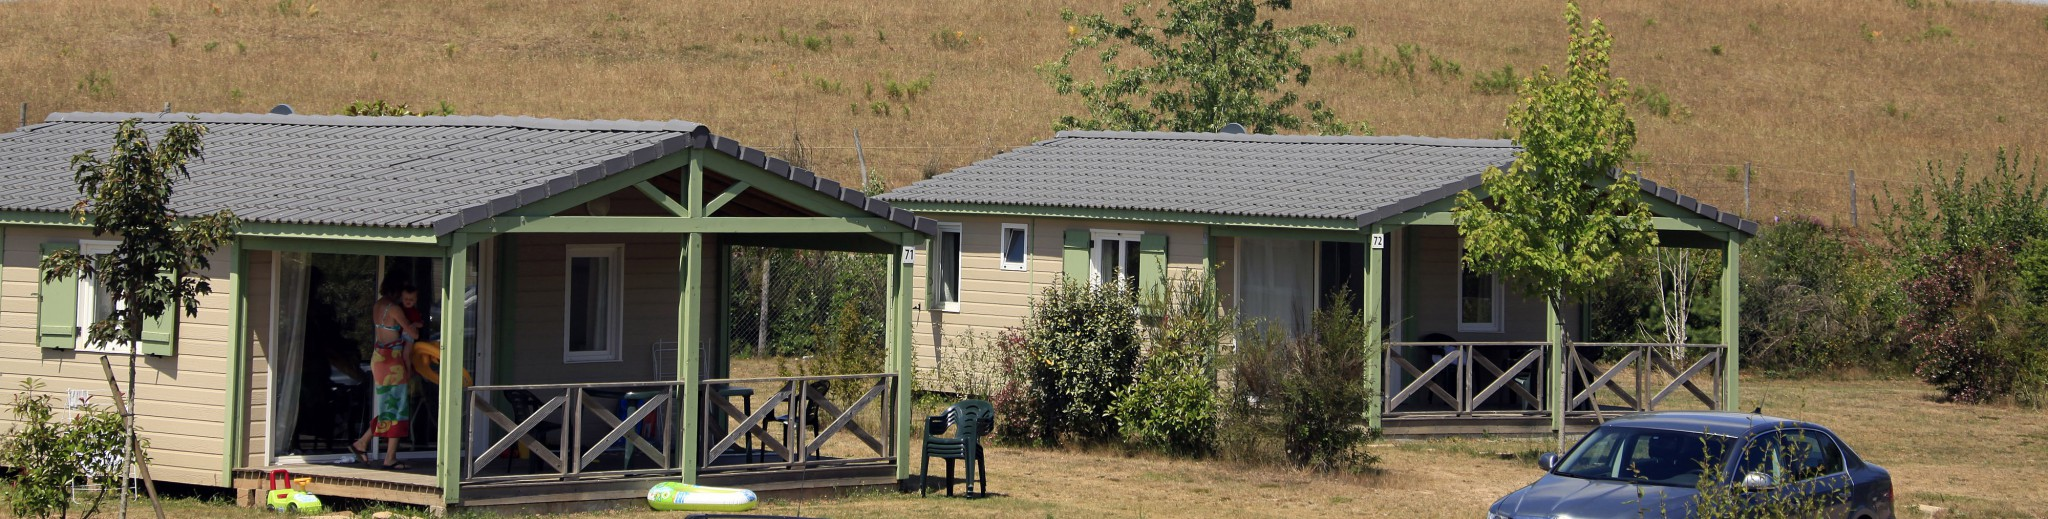 Camping Location vacances Correze Lot